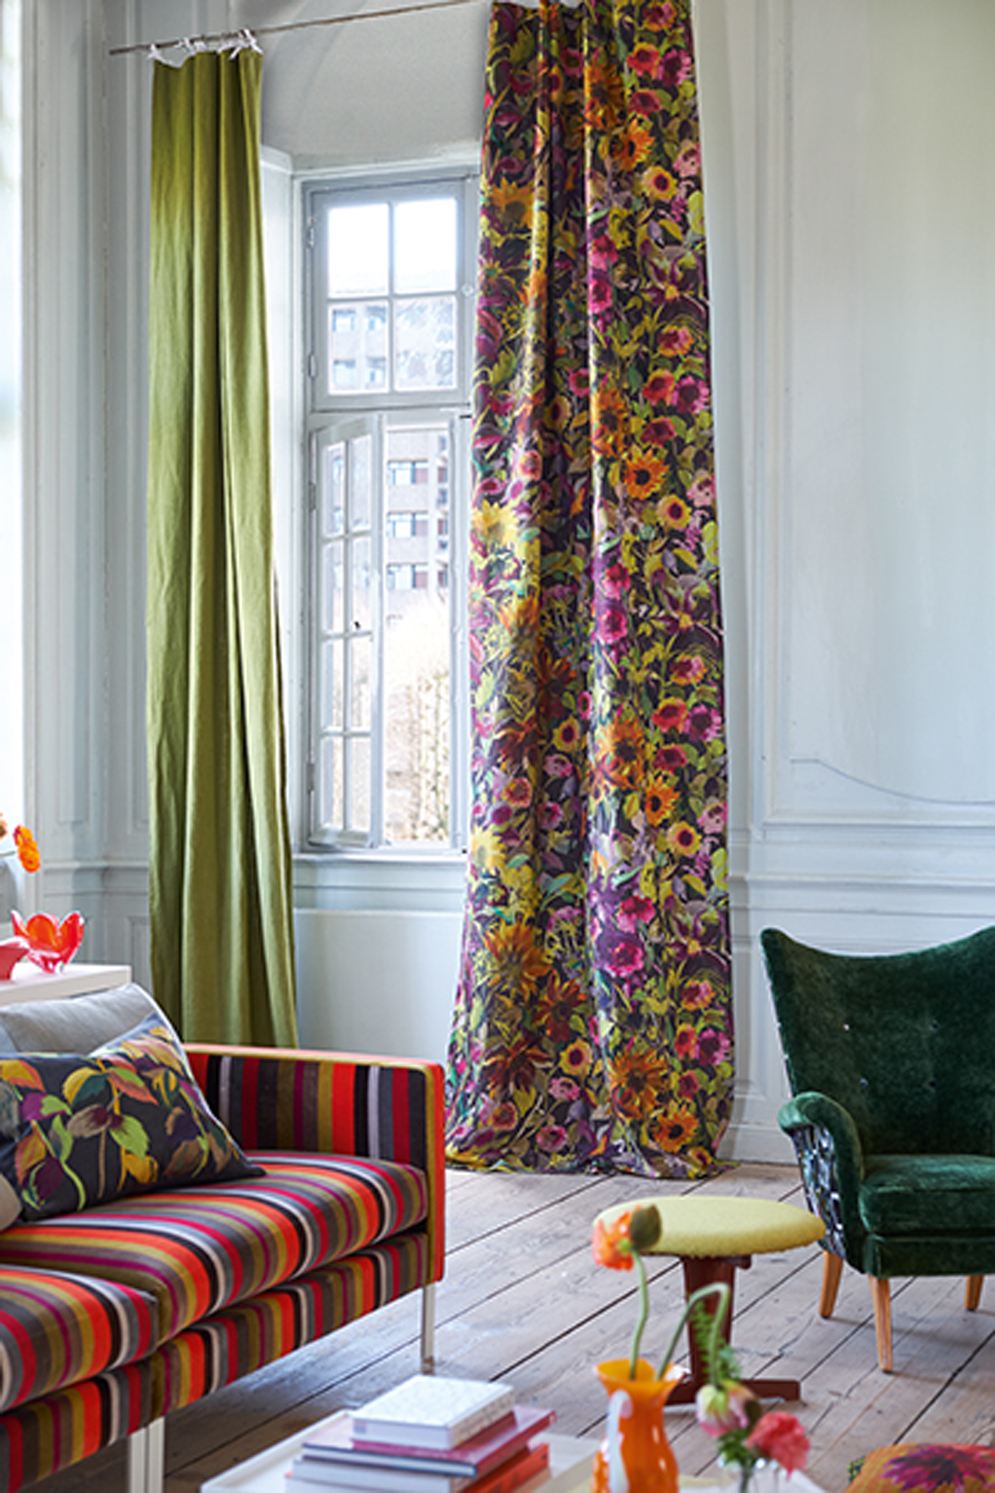 Designers Guild Jaipur Rose - Indian Sunflower RH curtain, Chandigarh - Verese Lambusa sofa<div style='clear:both;width:100%;height:0px;'></div><span class='cat'>Designers Guild</span>